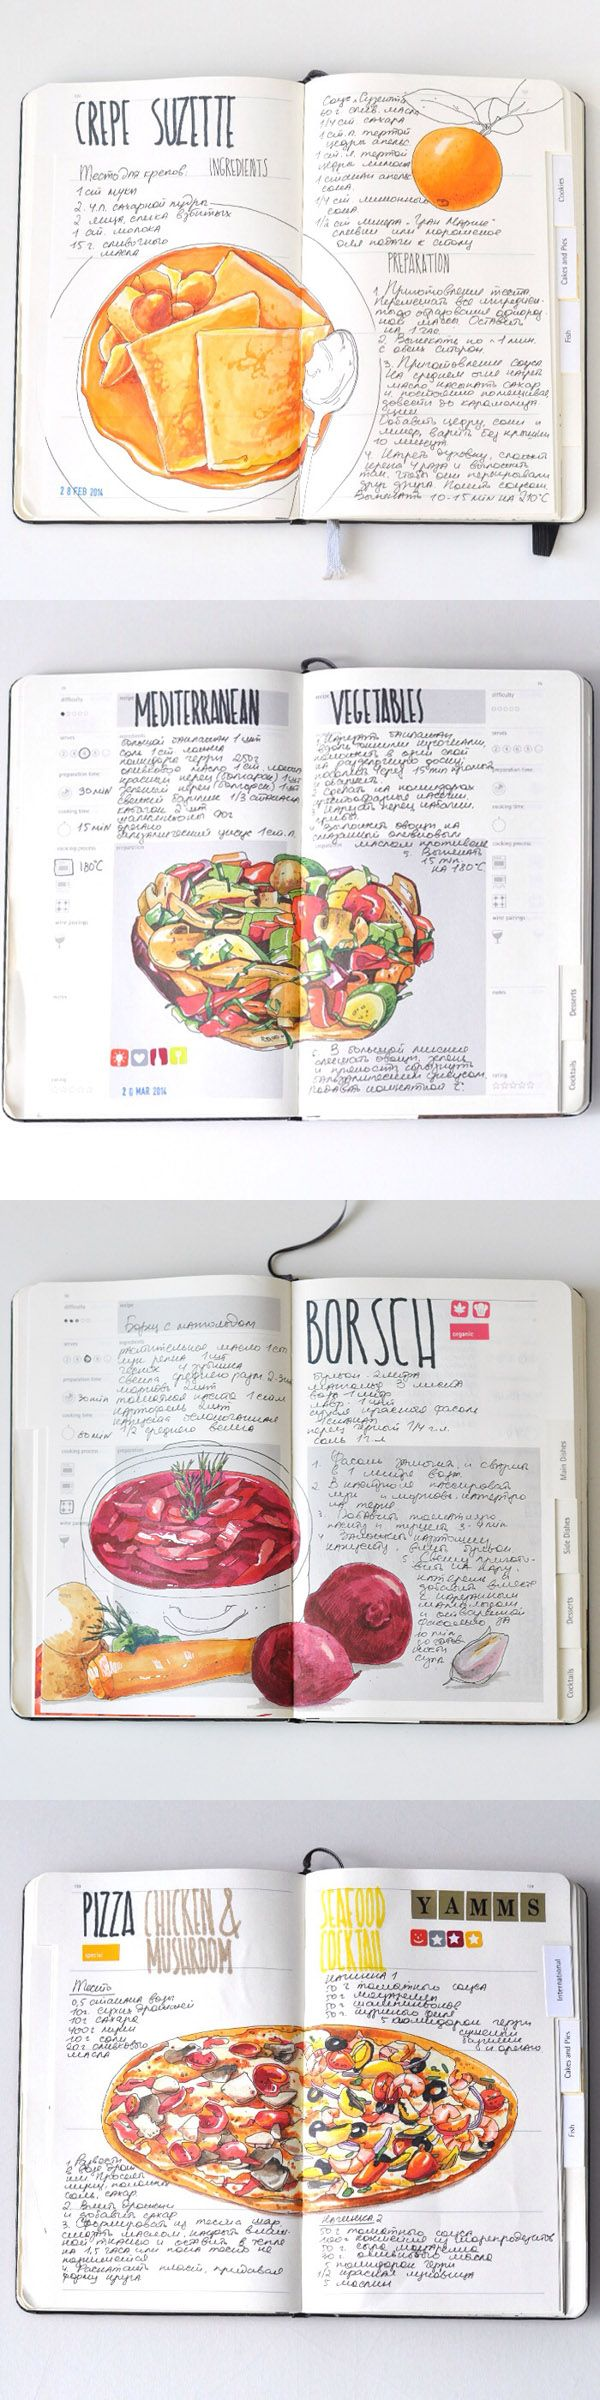 Recipe journal 2014 by Sally Mao